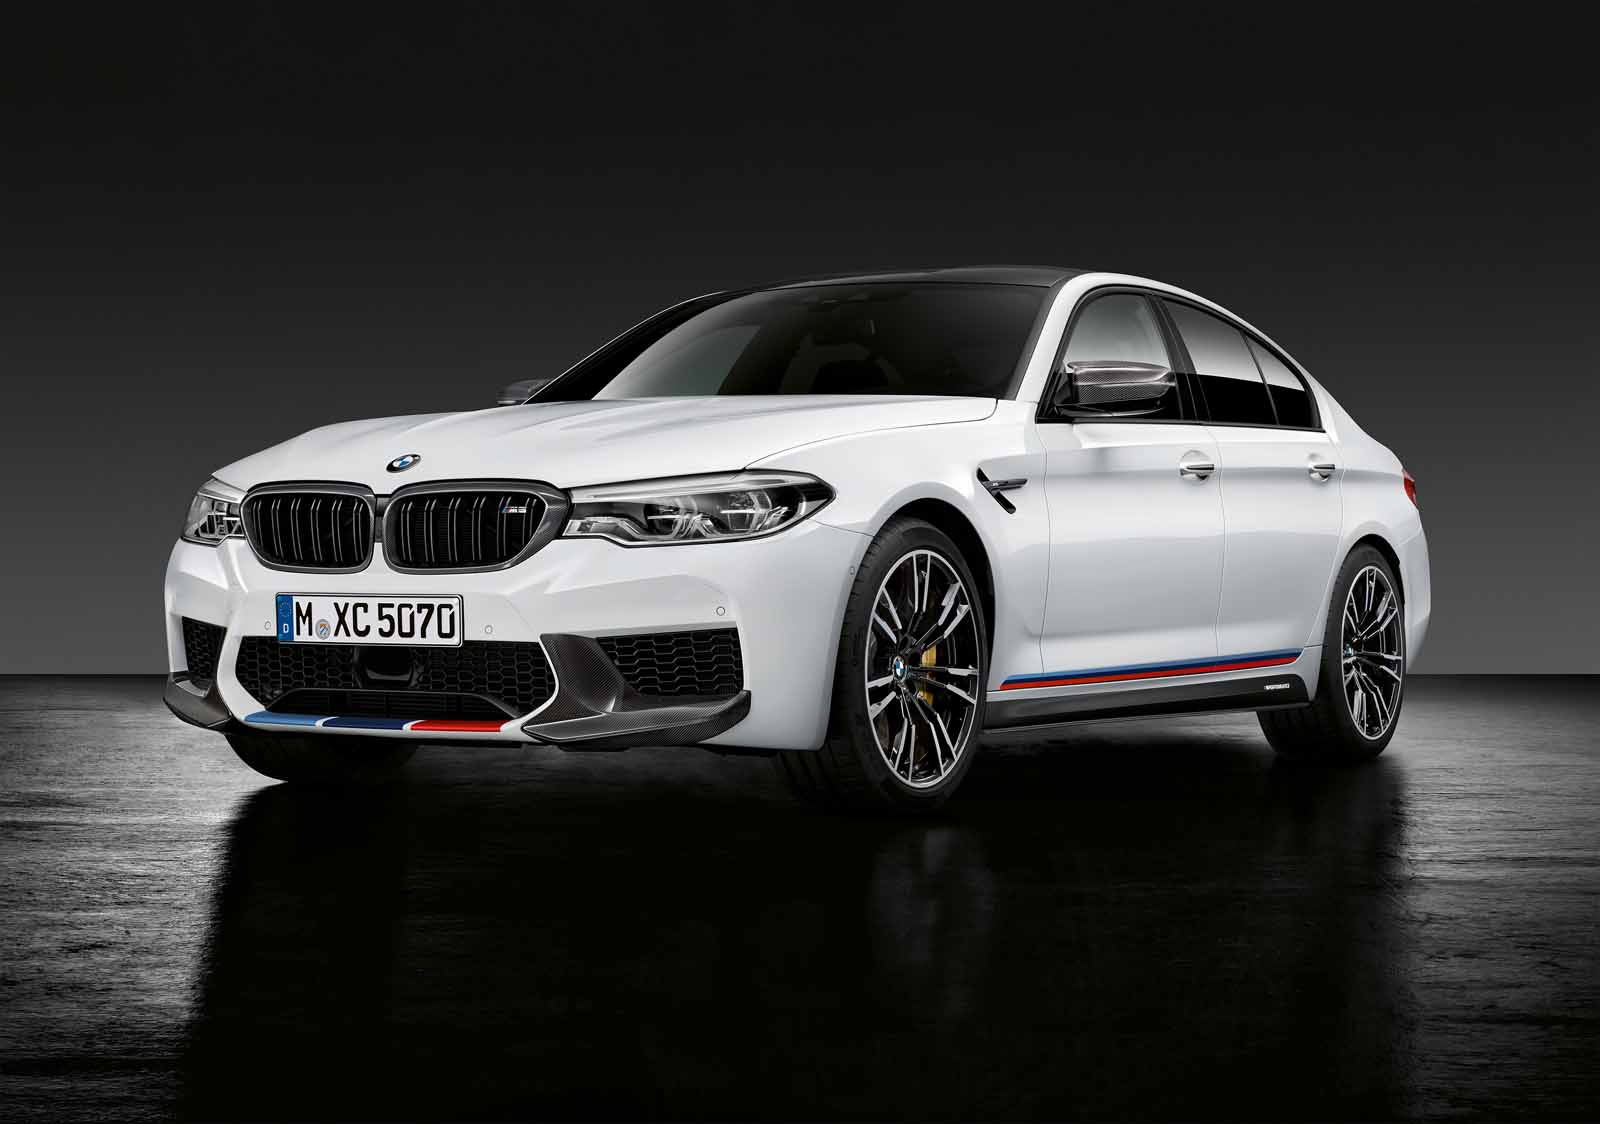 New m performance parts have us drooling over the 2018 bmw m5 2018 bmw m5 sema 1 sciox Images